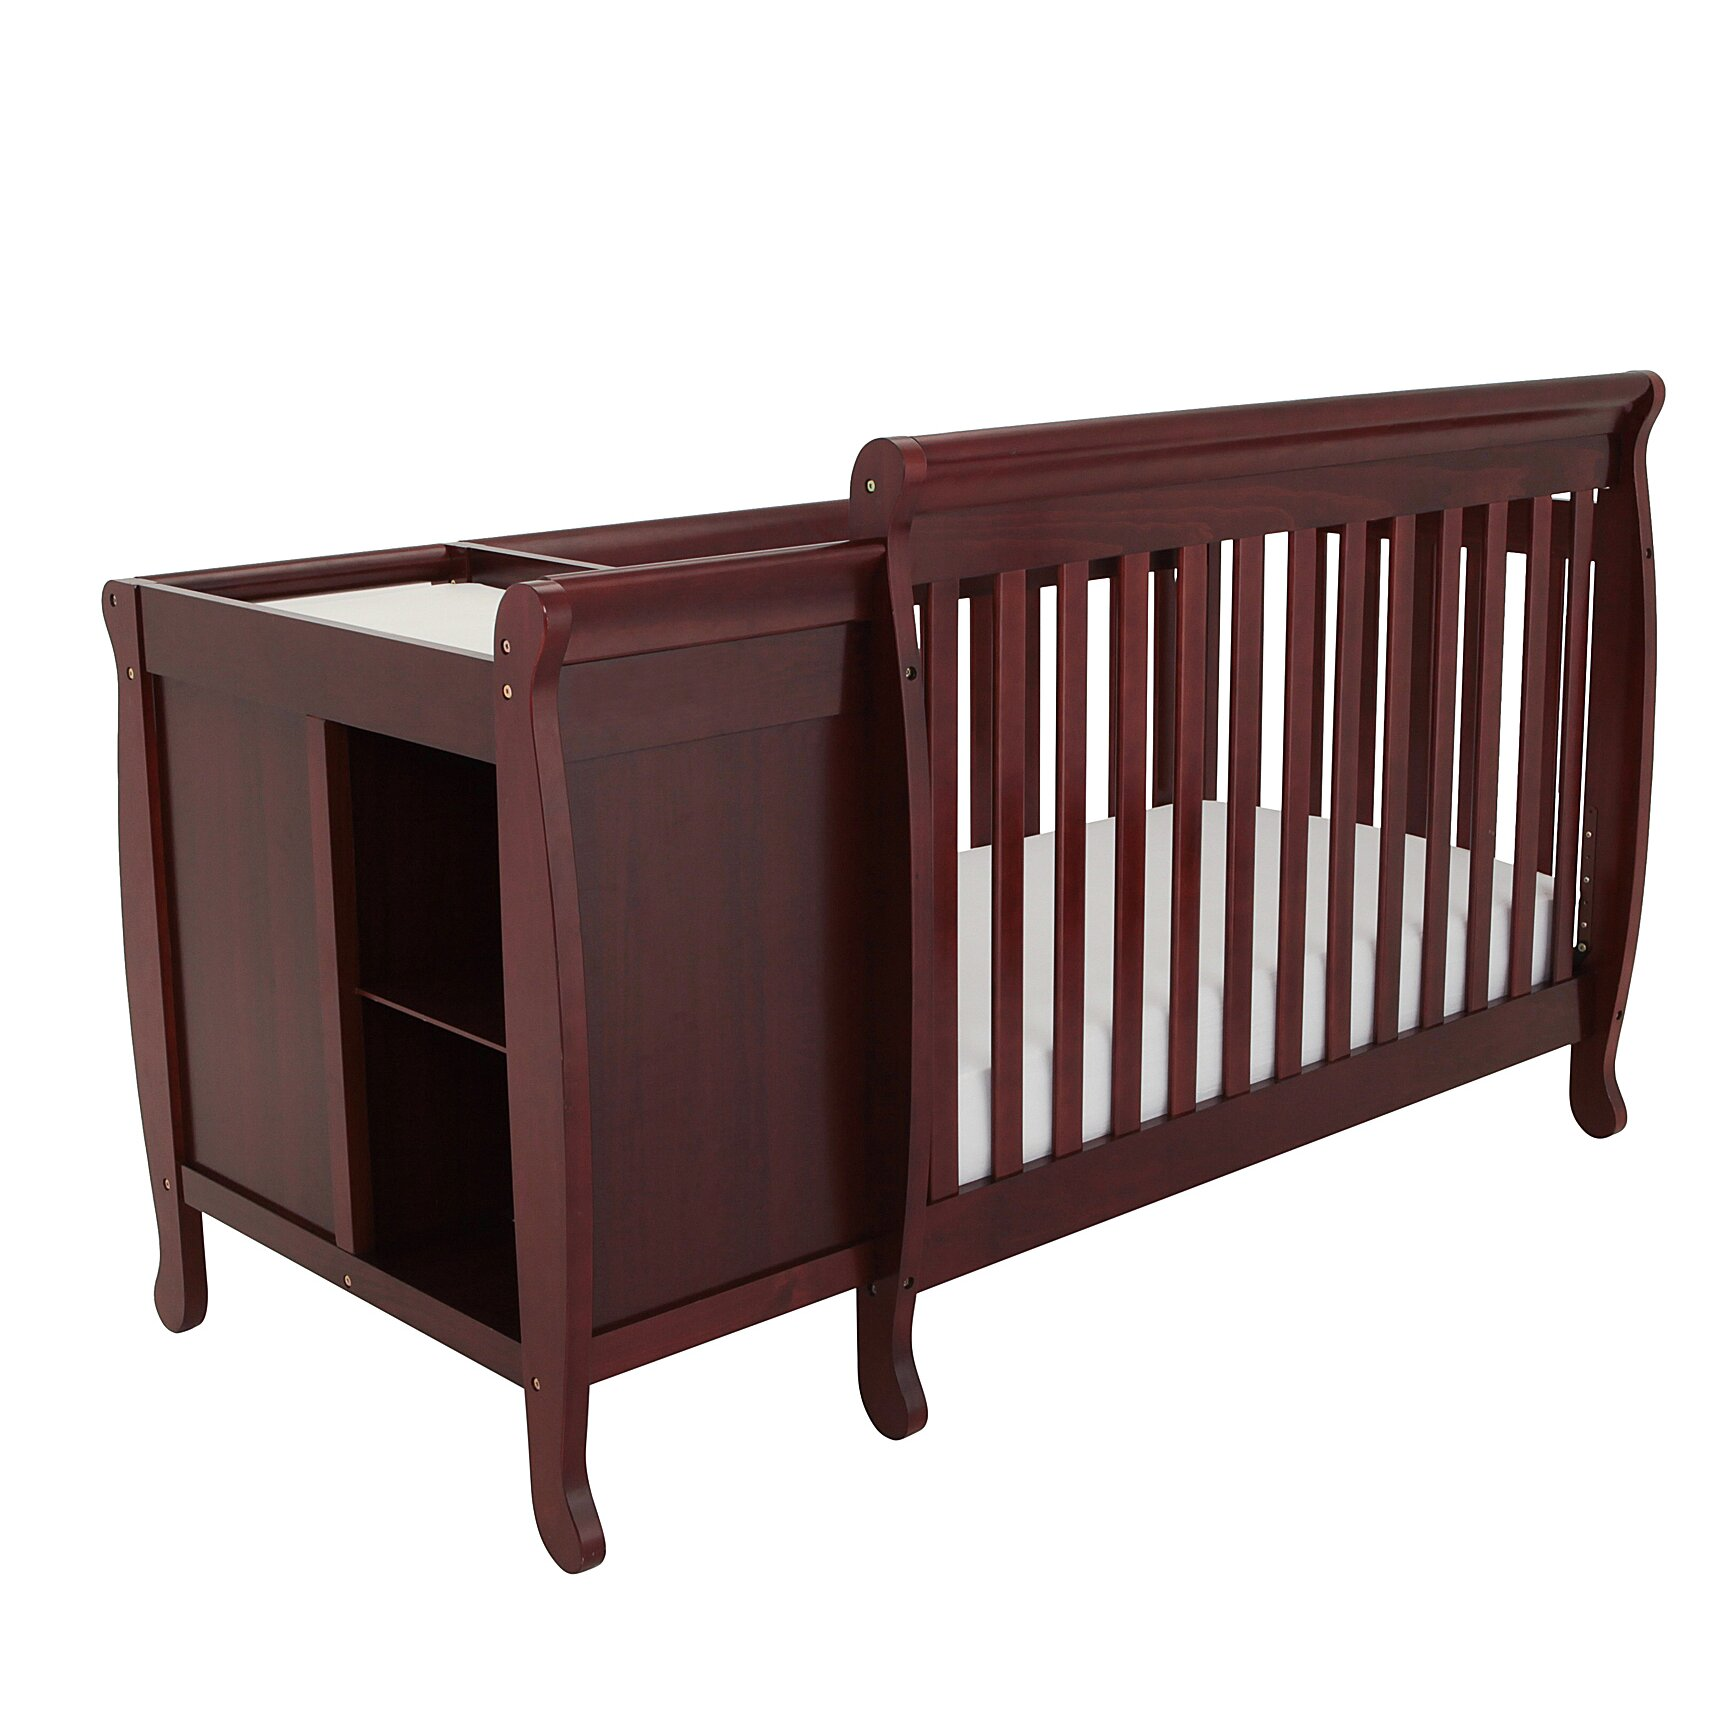 Baby bed furniture - Afg Baby Furniture Kimberly 3 In 1 Convertible Crib